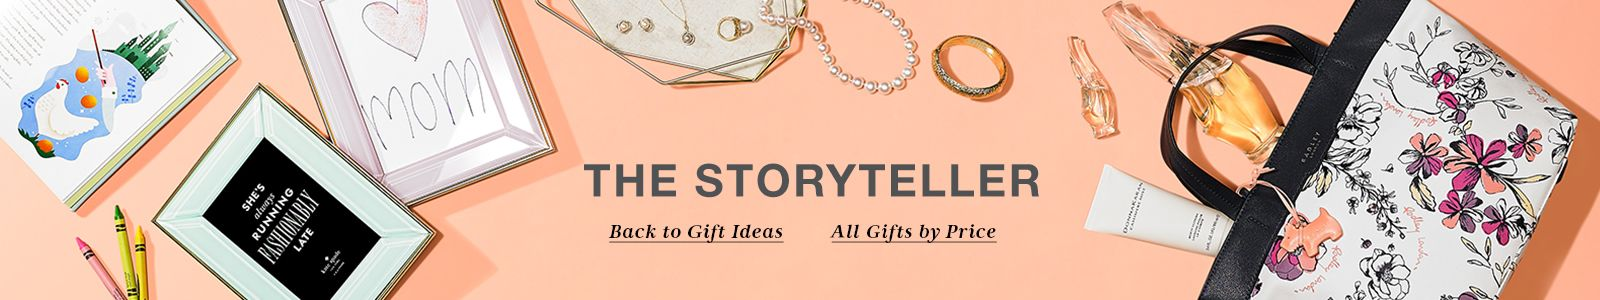 The Storyteller, Back to Gift Ideas, All Gifts by Price